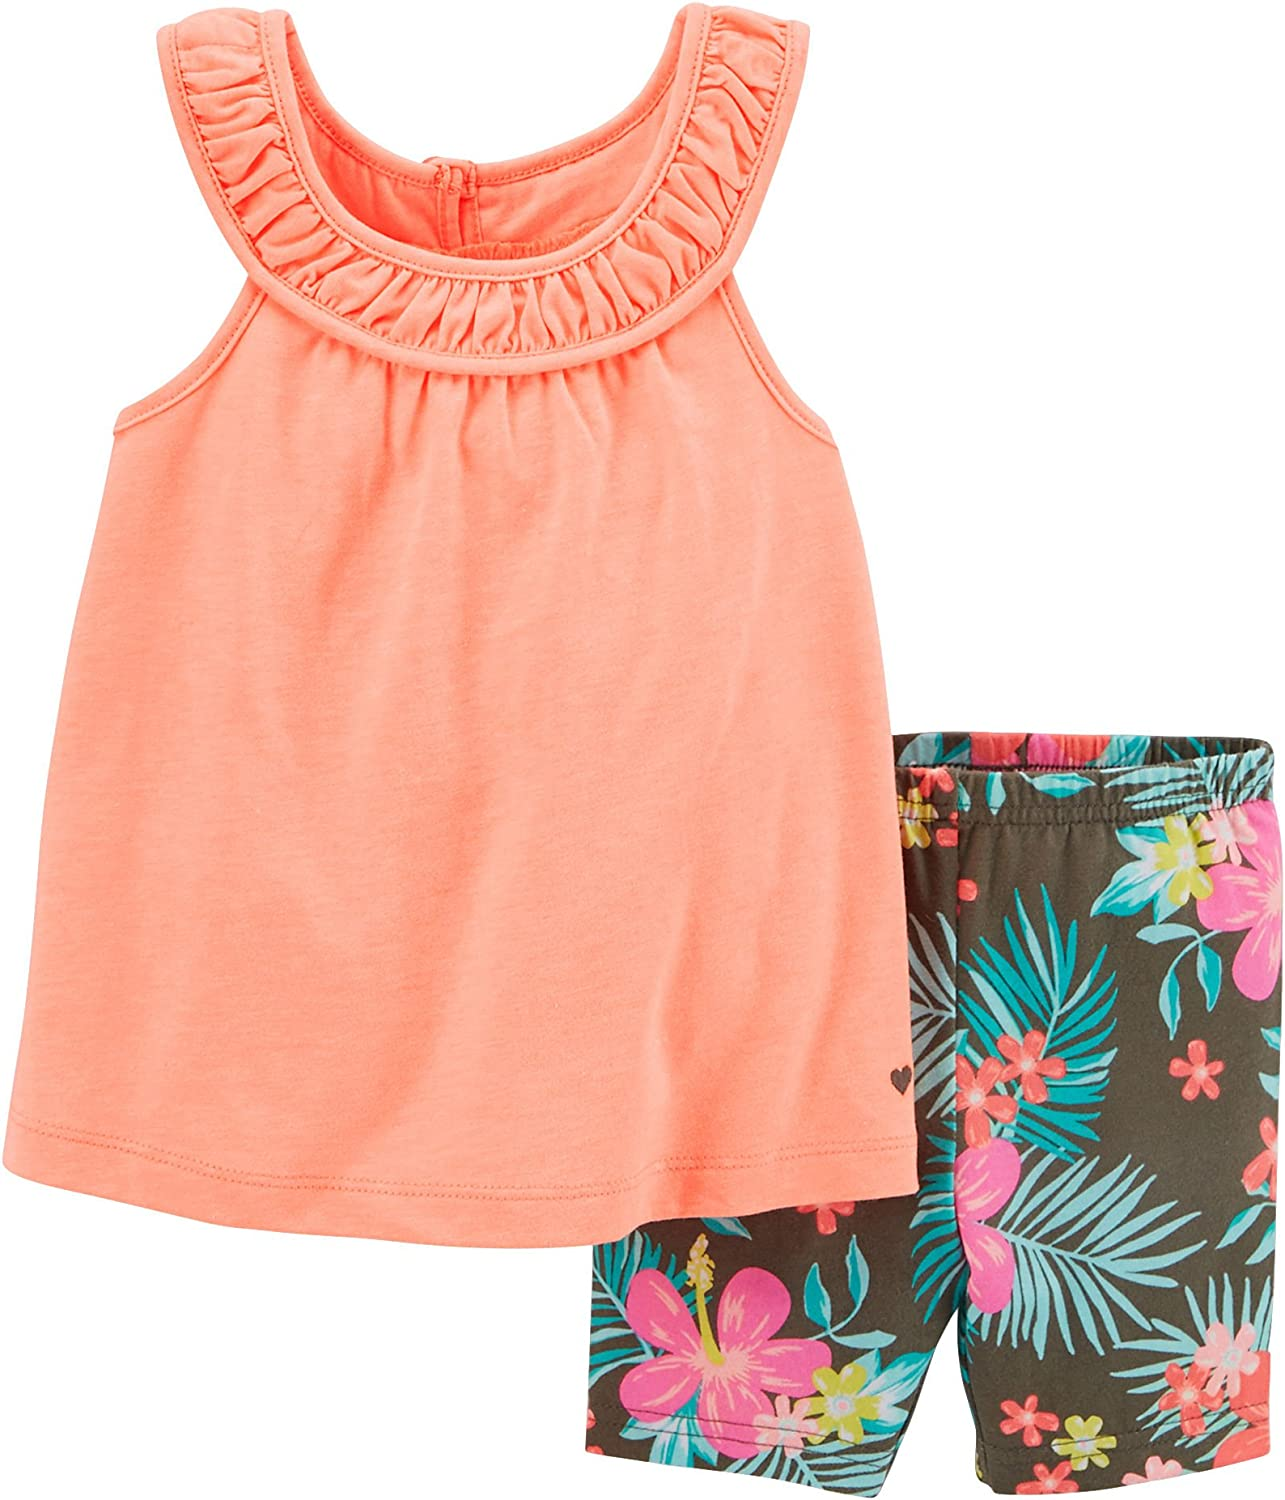 Carters Baby Girls Floral Shorts Set 6 Month Coral//olive green